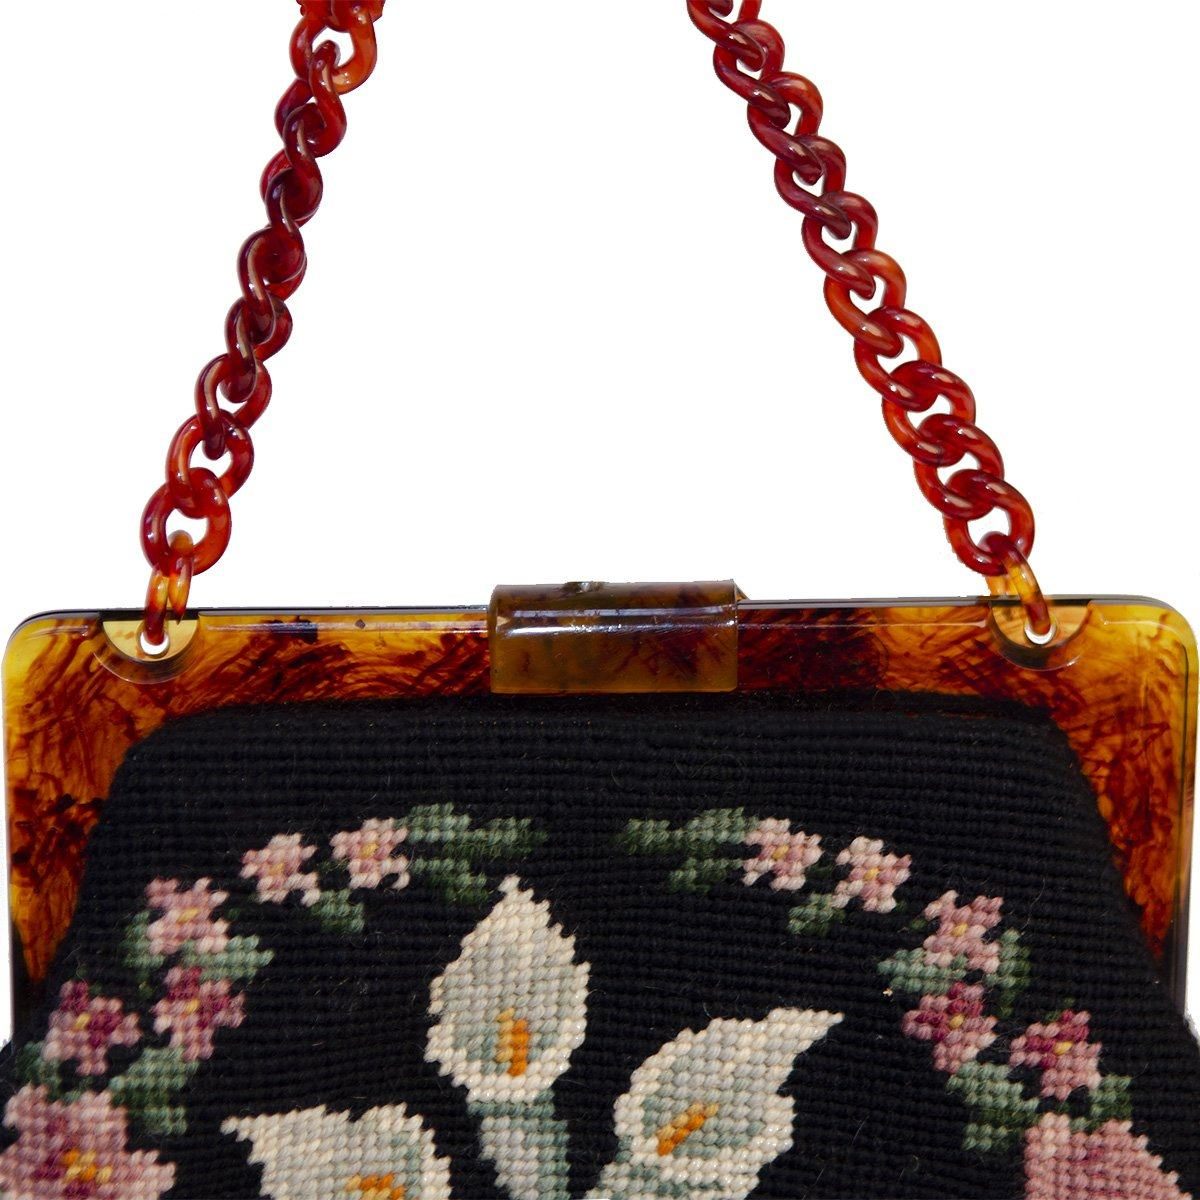 Maud Hundley Needlepoint Handbag 4, Black, Pink, Blue, White Floral